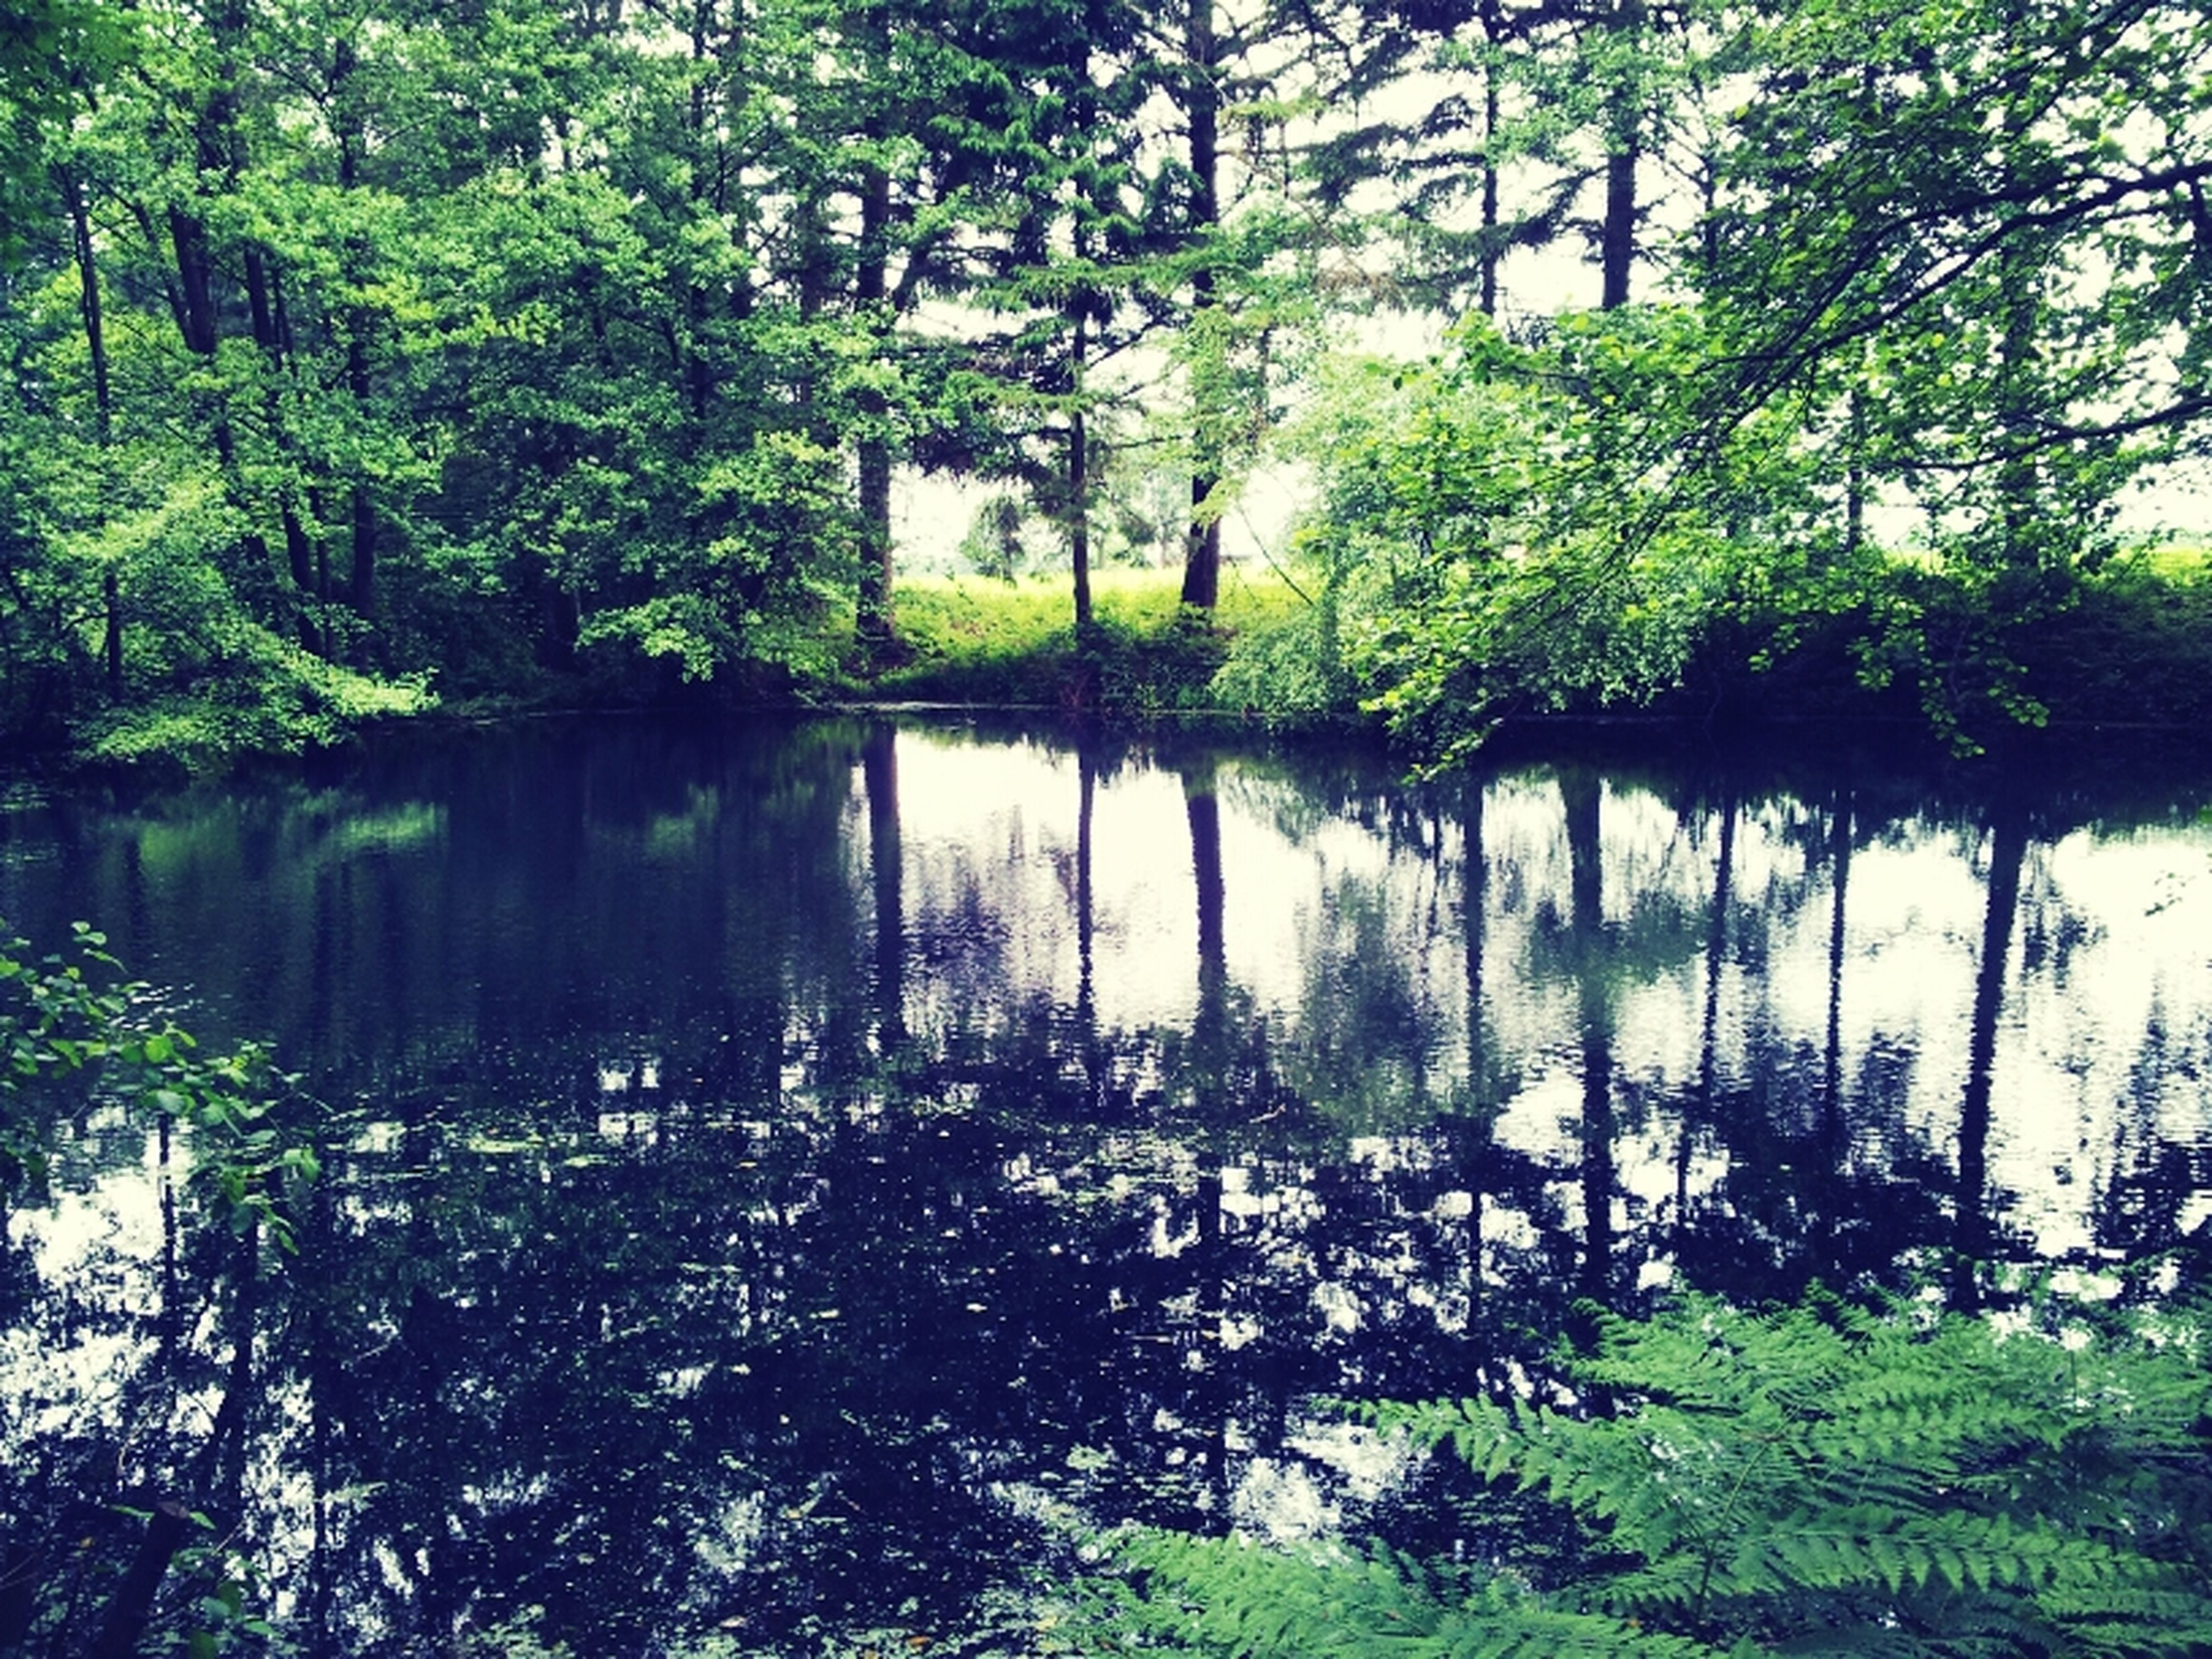 #wood #forest #summer #2012 #lake #mirroring